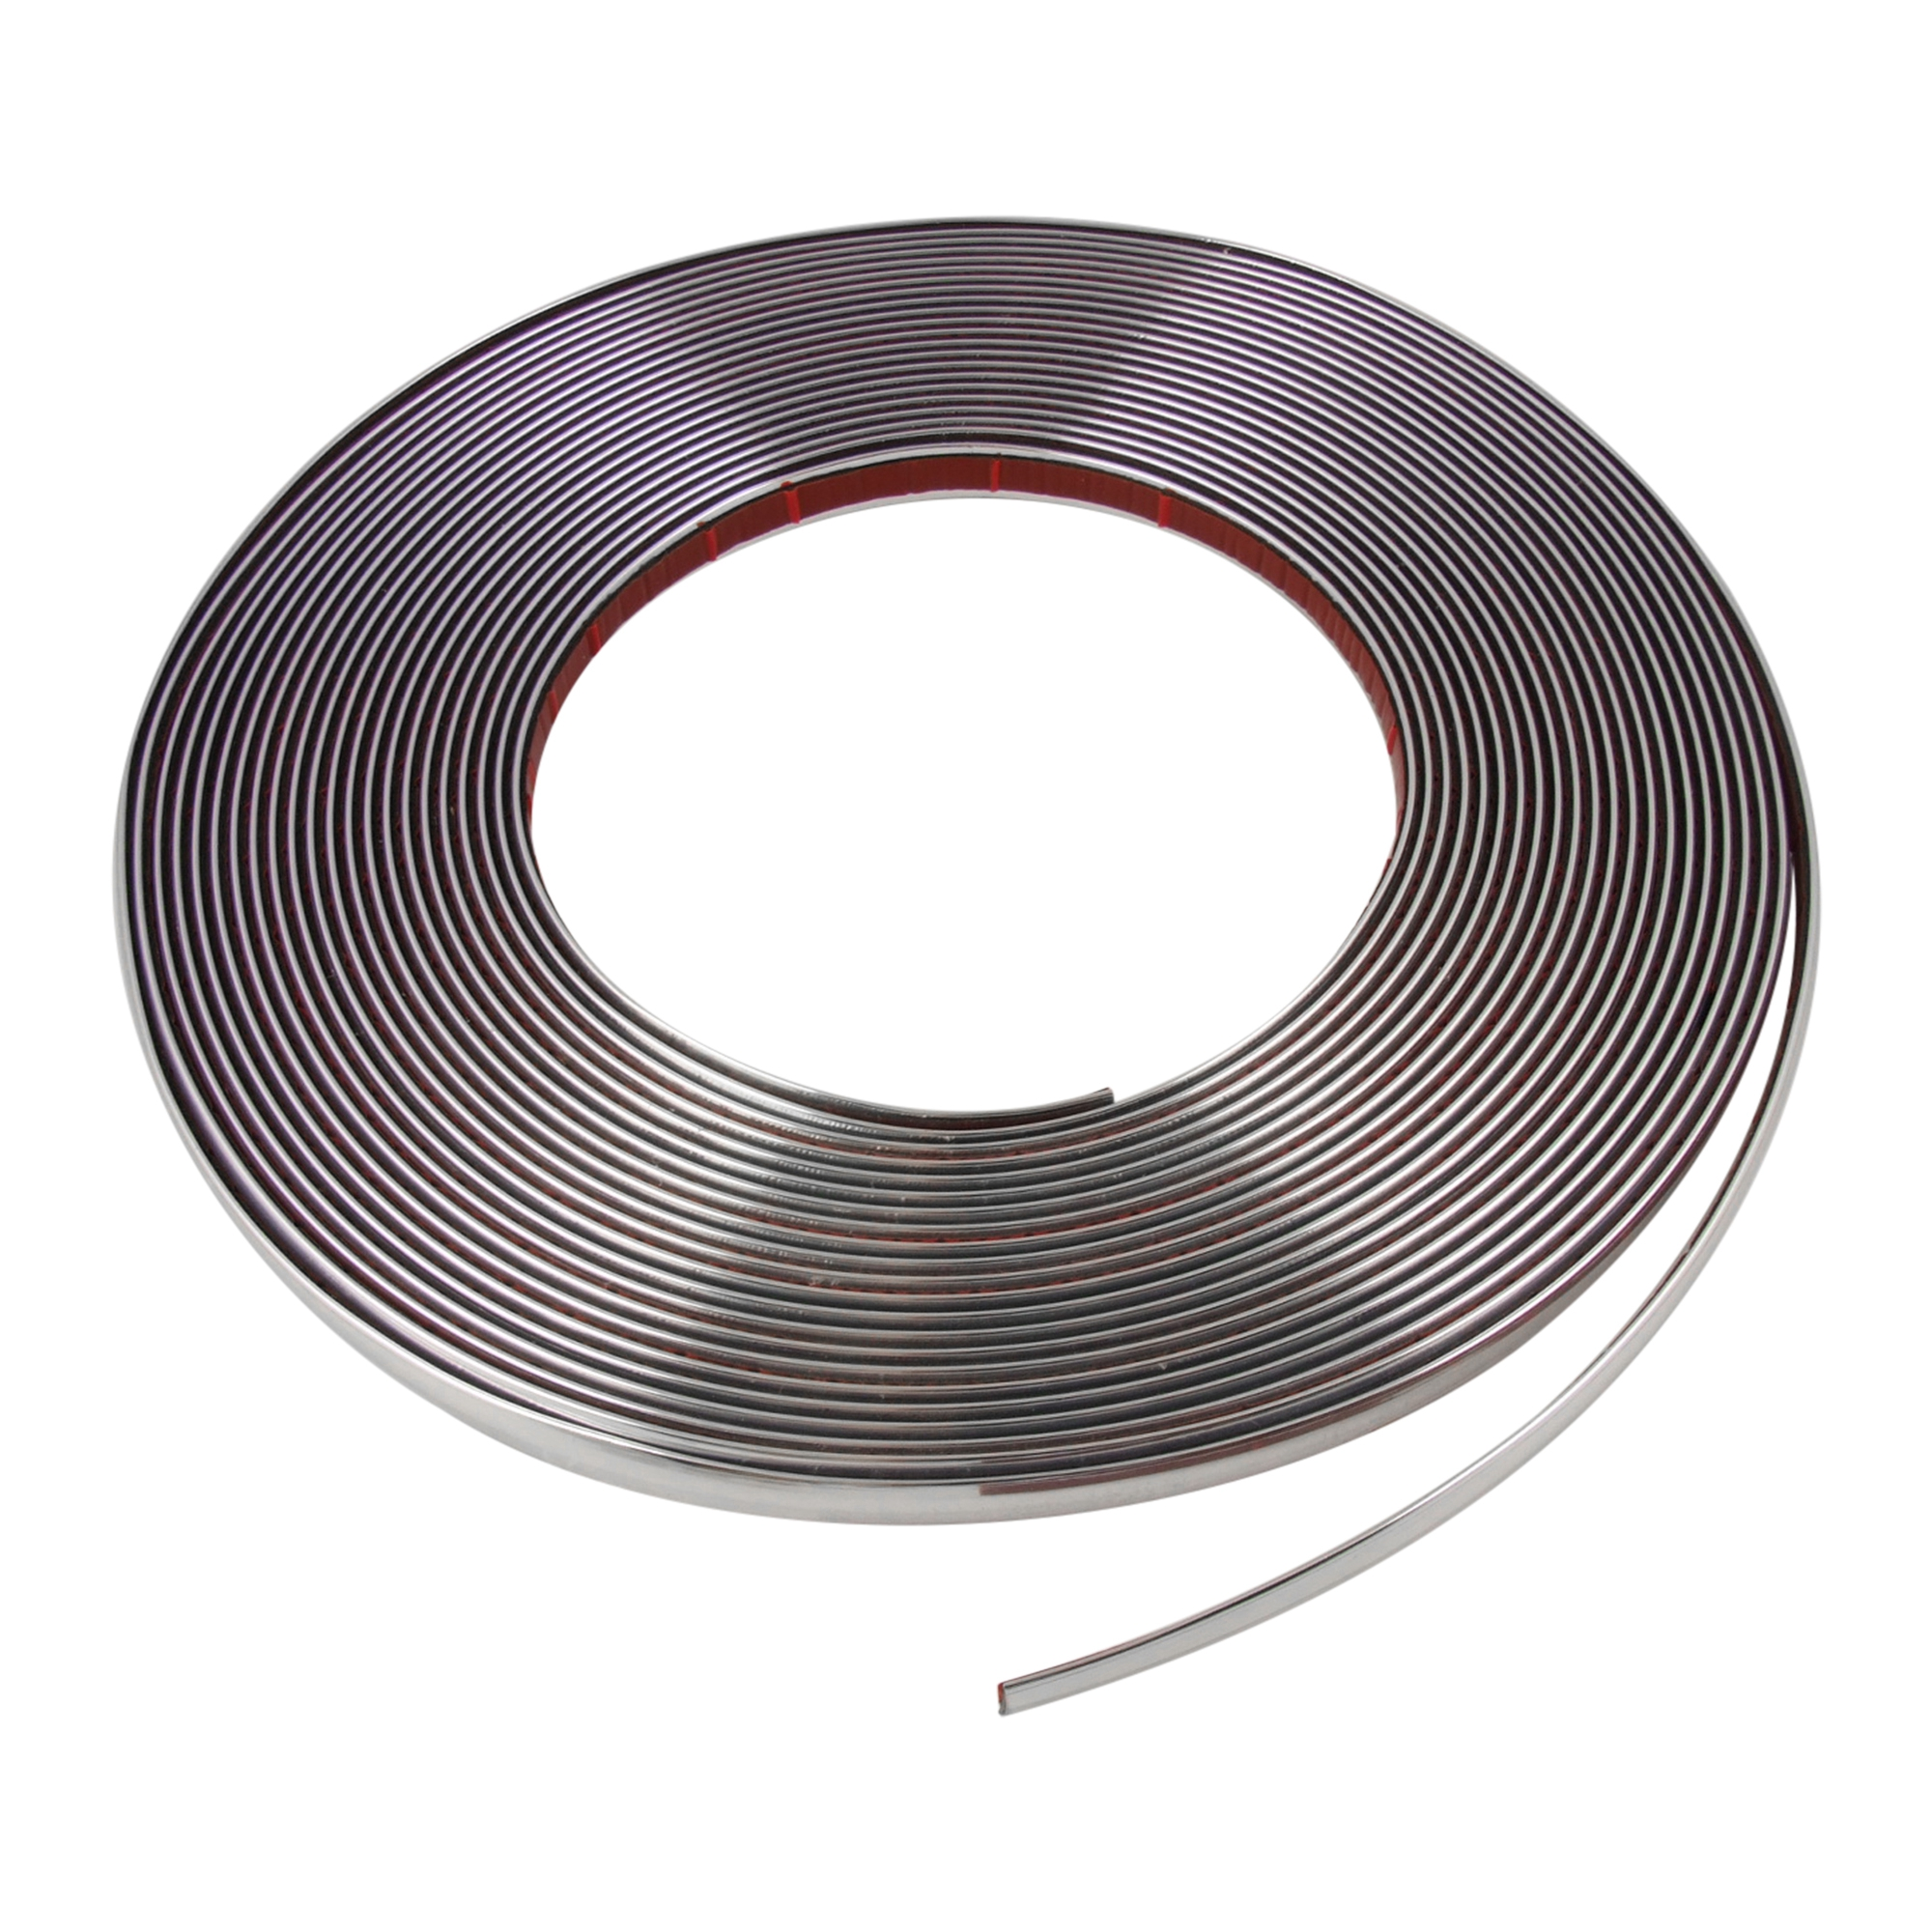 Silver Tone 15mm x 15M Chrome Moulding Trim Strip Decoration for Car